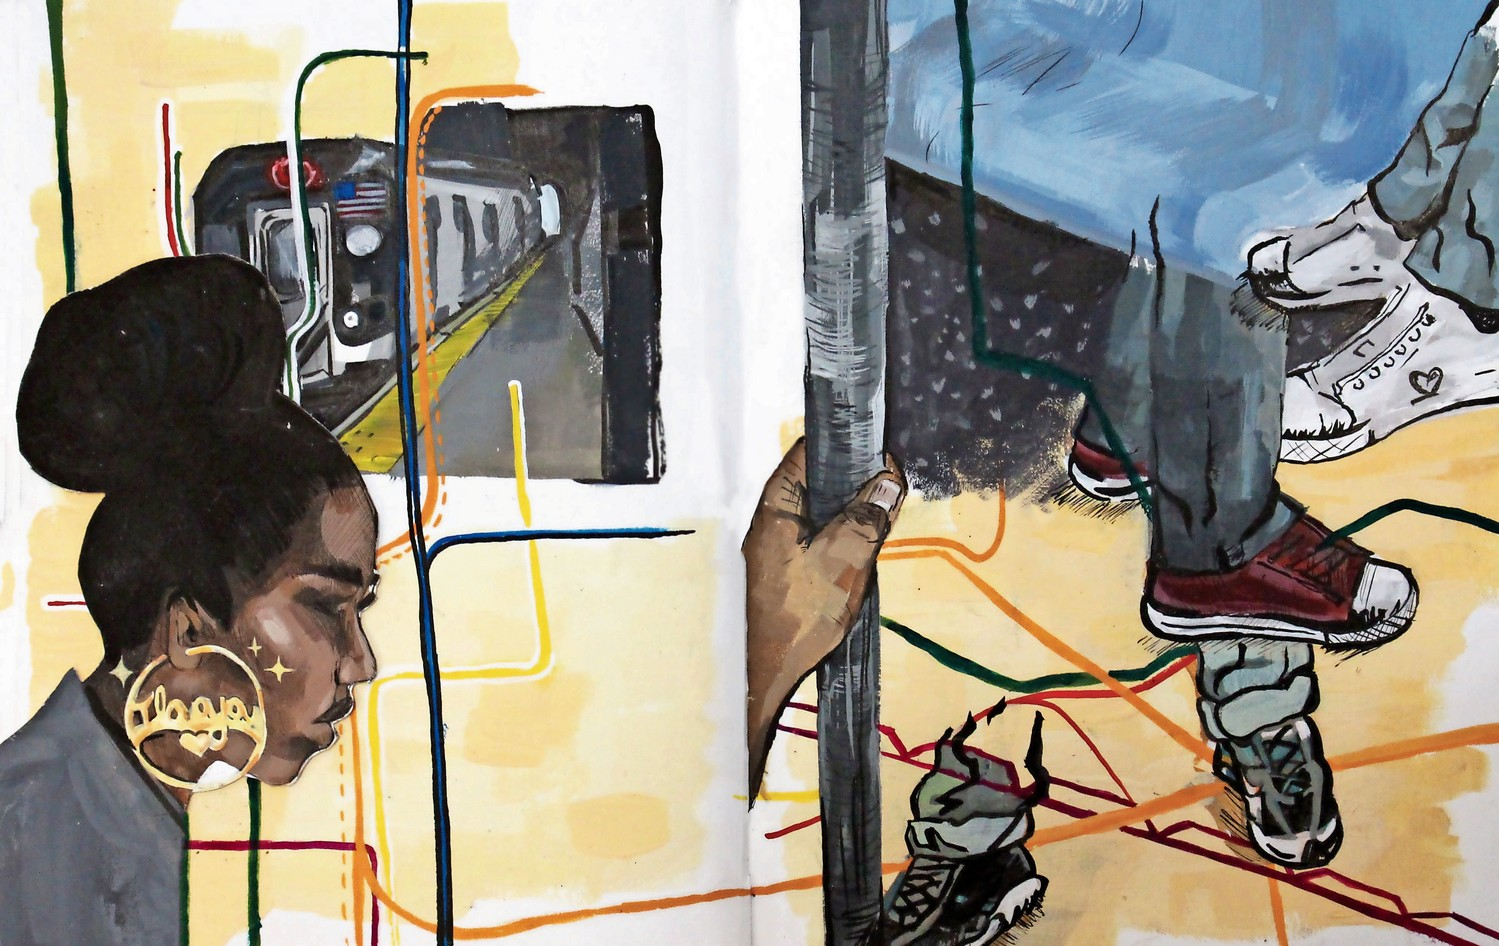 Much of Maya Dixon's art is inspired by life in the Bronx, like public transportation. A senior at Ethical Culture Fieldston School, Dixon took home the gold medal at the 95th Scholastic Art and Writing Awards, which includes at $10,000 scholarship, for her portfolio 'Essence of Soul.'